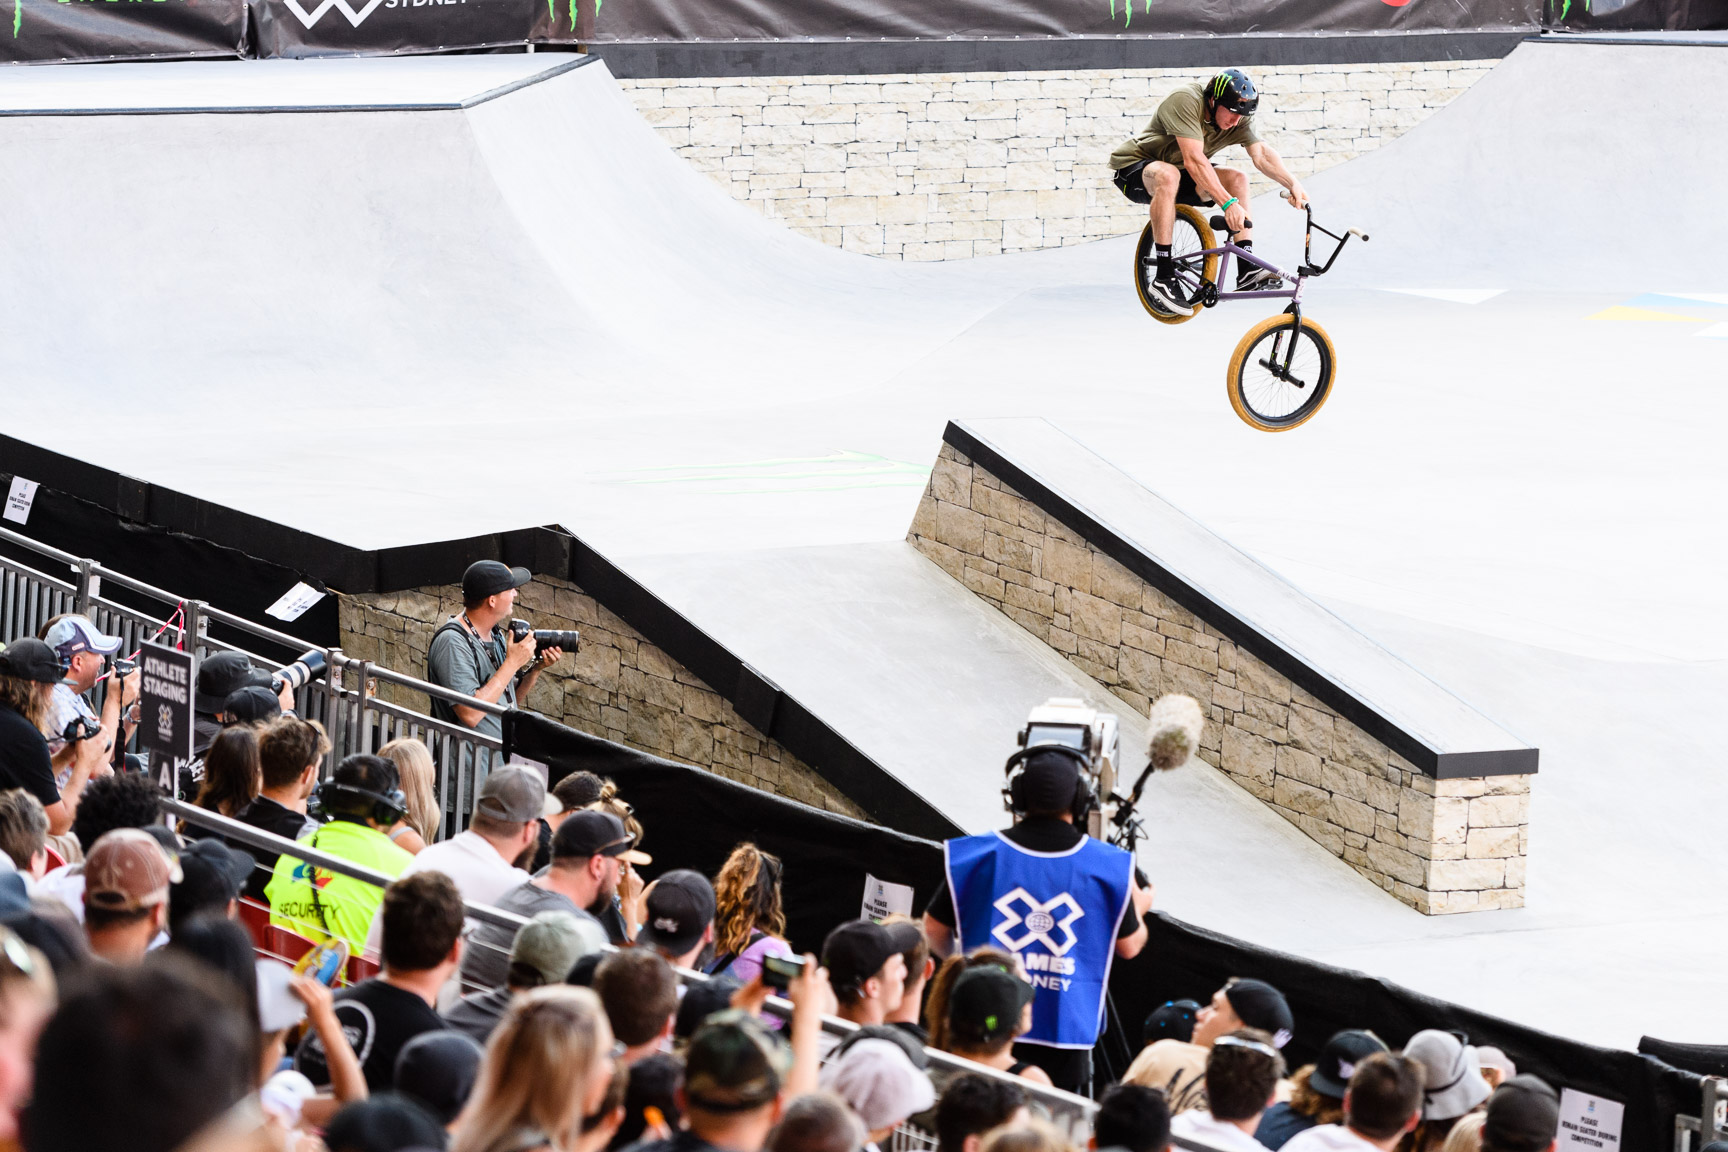 Alex Donnachie, BMX Street Final